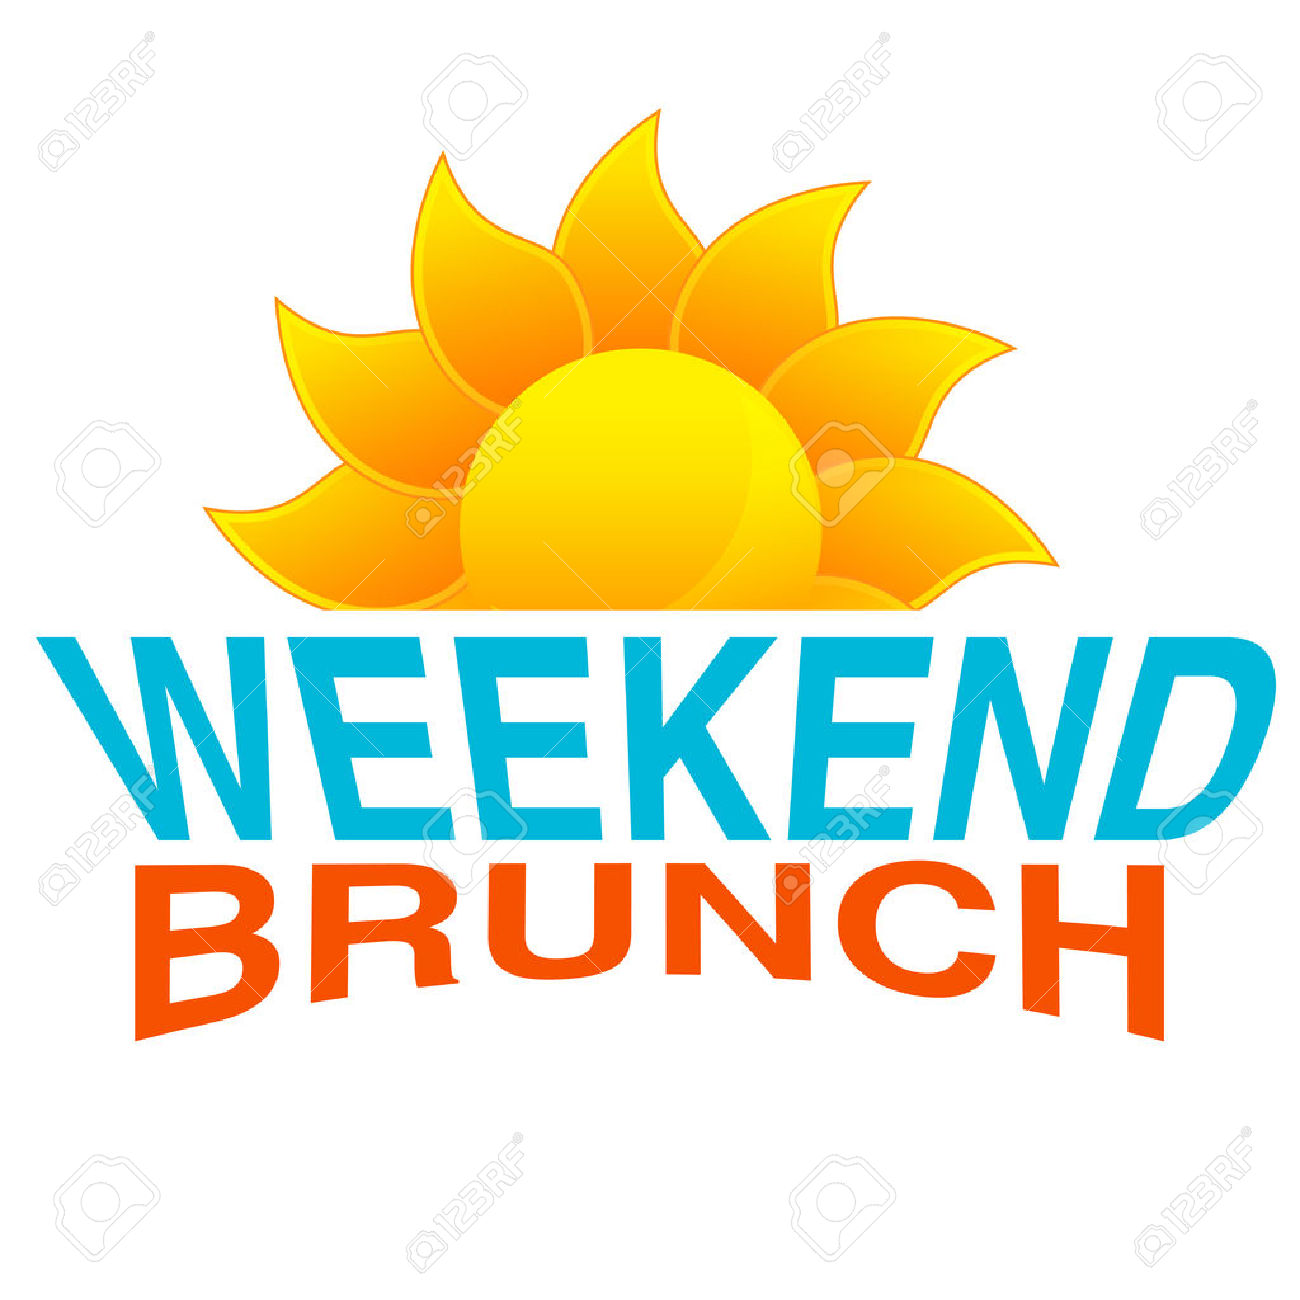 svg stock Brunch clipart saturday. Free download best on